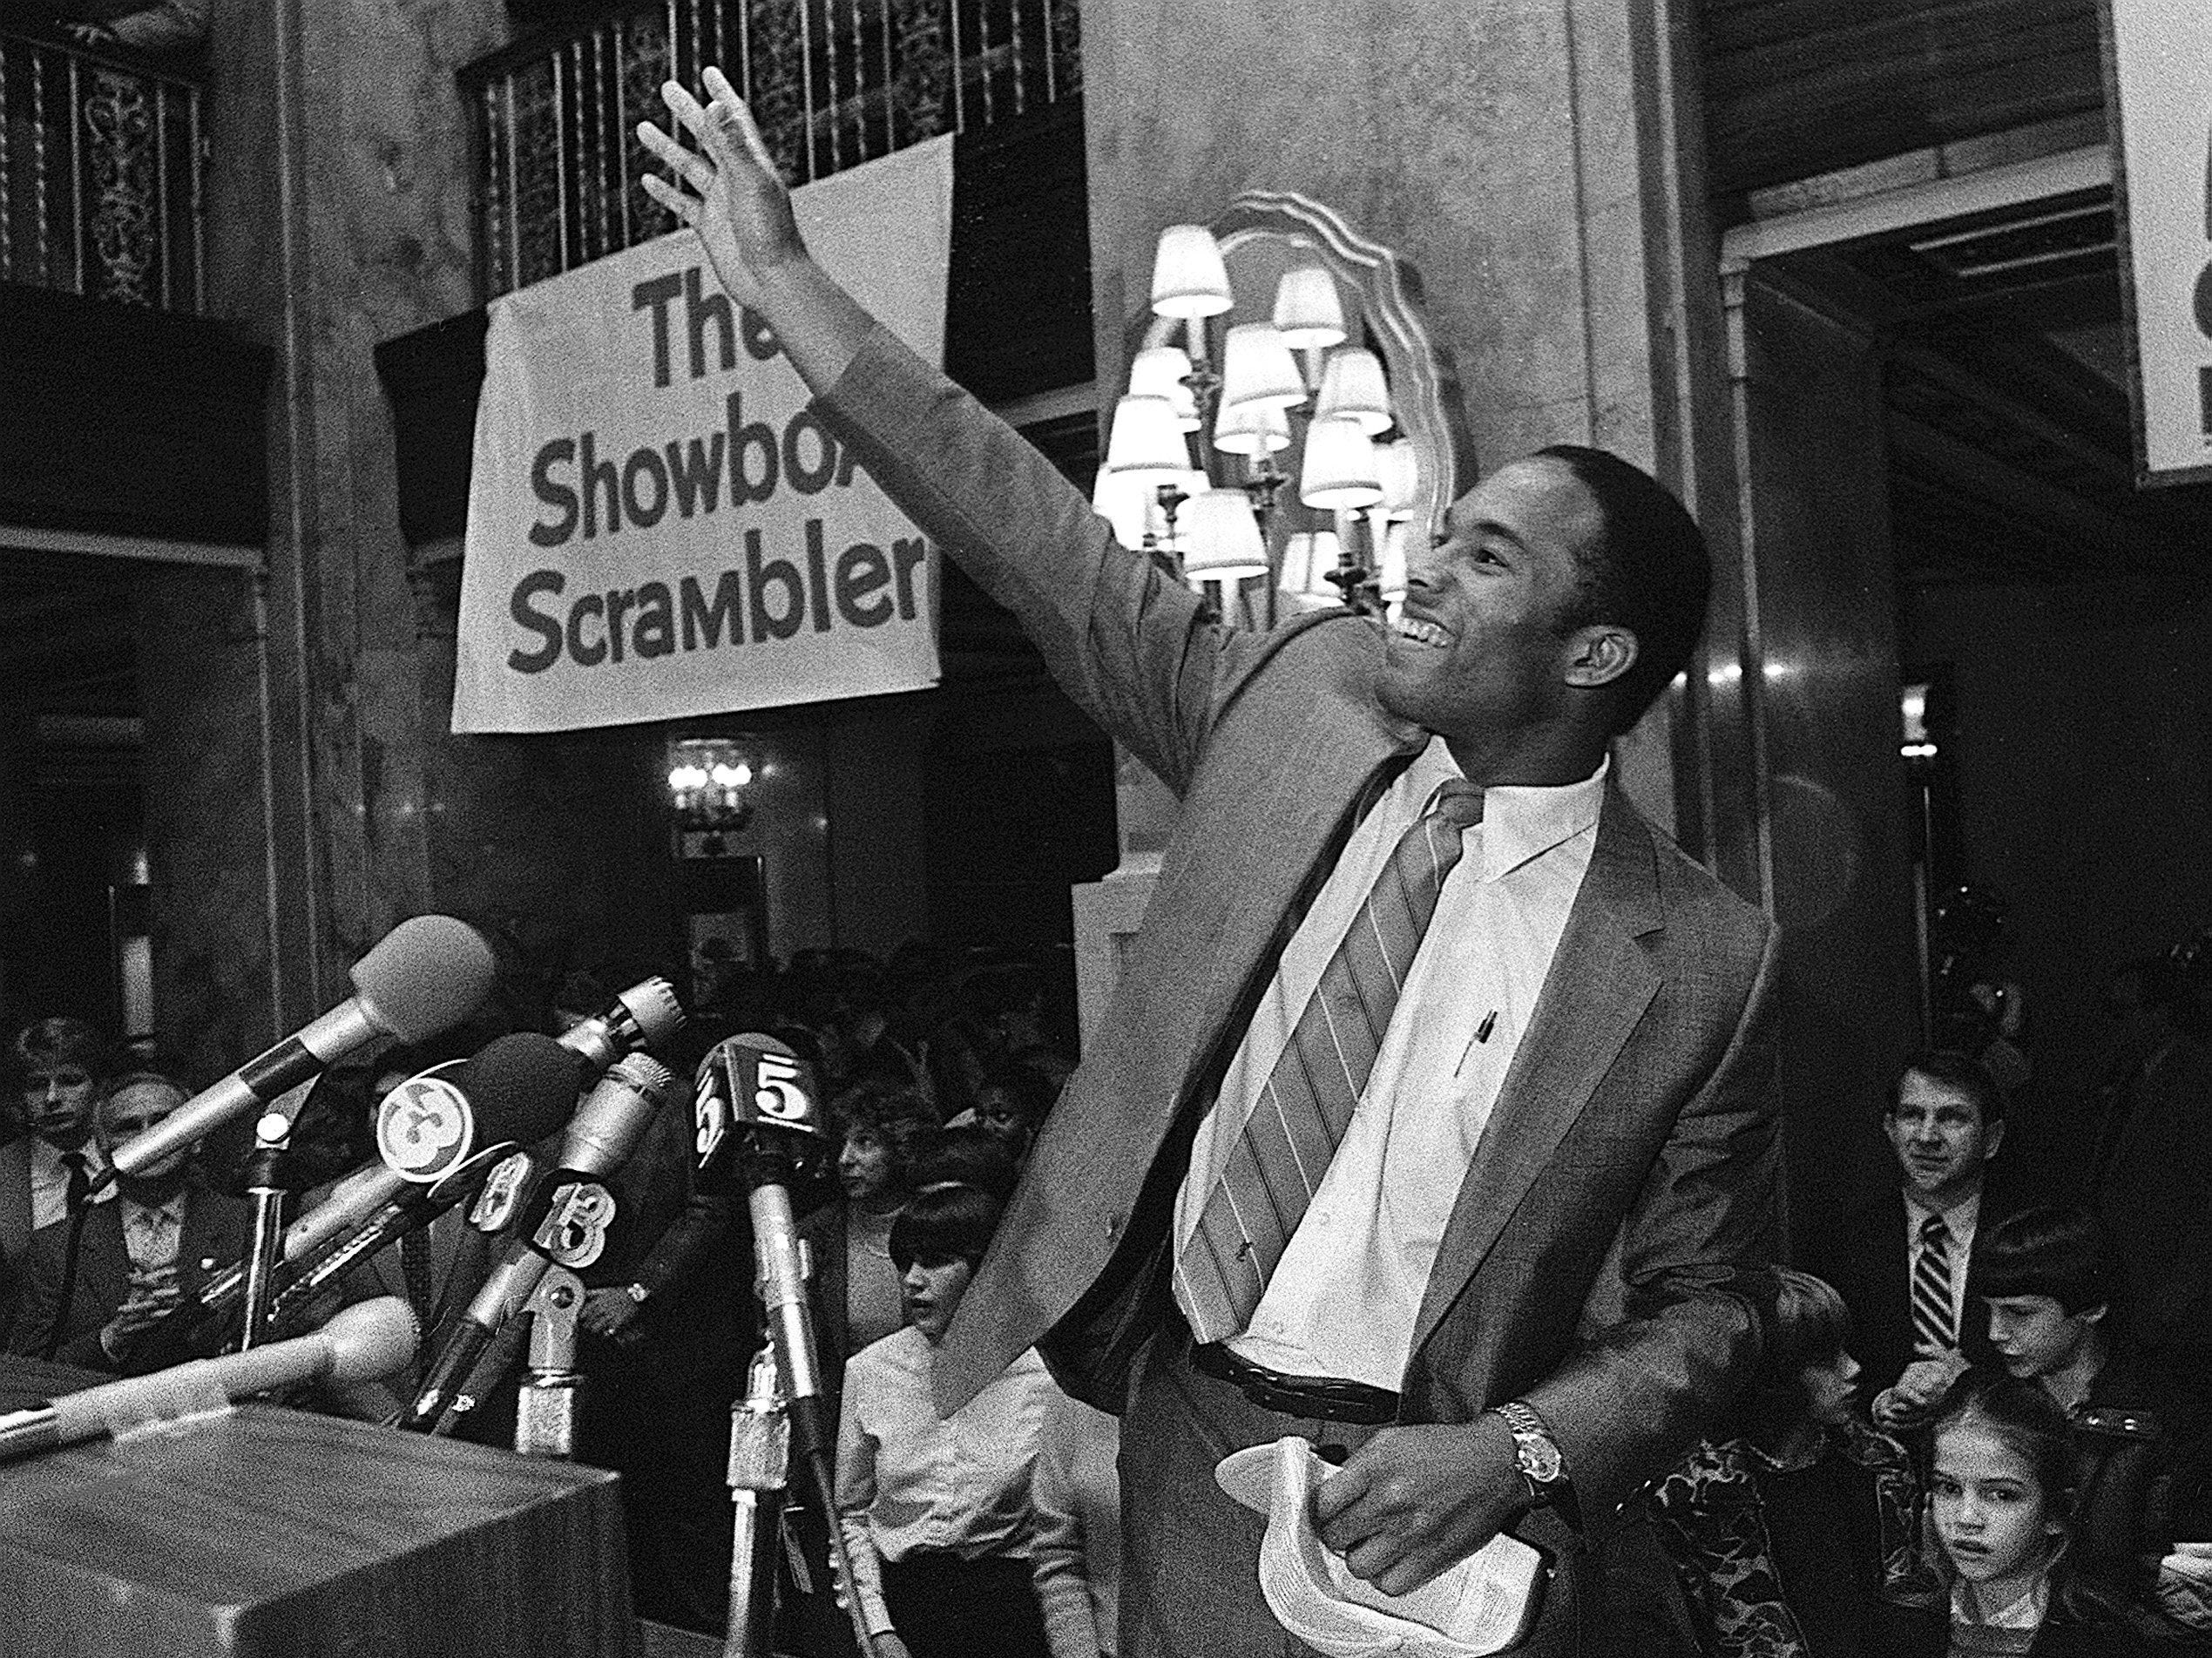 Former University of Alabama quarterback Walter Lewis waves to fans after being introduced as the newest member of the Memphis Showboats in February 1984. Lewis, who signed a three-year contract worth $1 million with a $400,000 signing bonus, was introduced to about 400 fans at a press conference in the lobby of The Peabody..